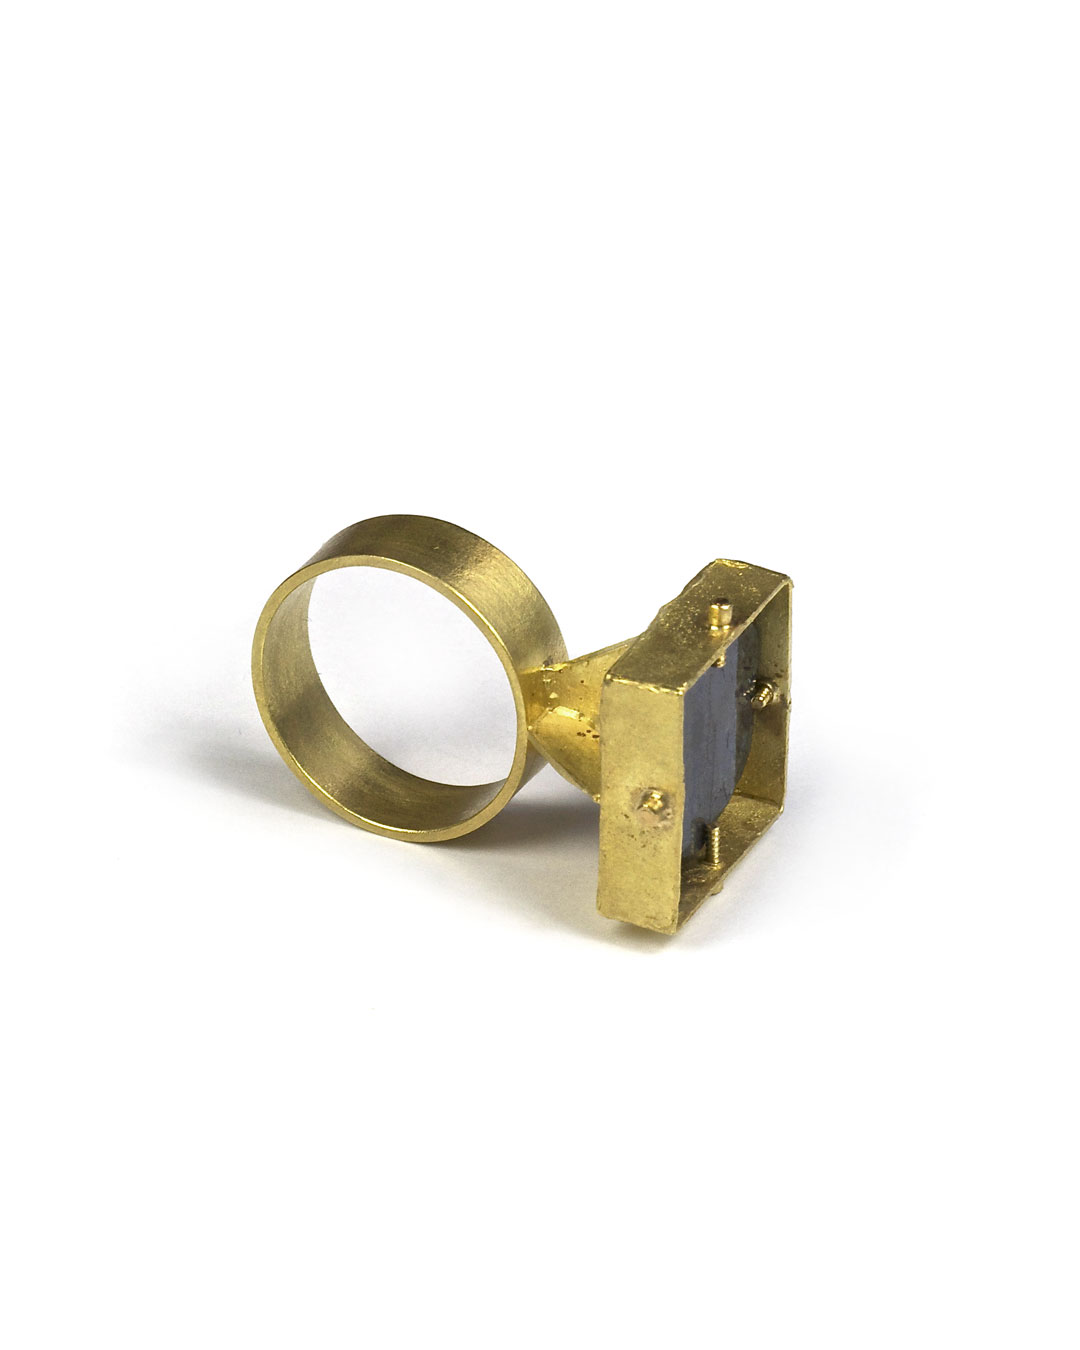 Andrea Wippermann, untitled, 2007, ring; 18ct gold, sapphire, 32 x 20 x 19 mm, €2550